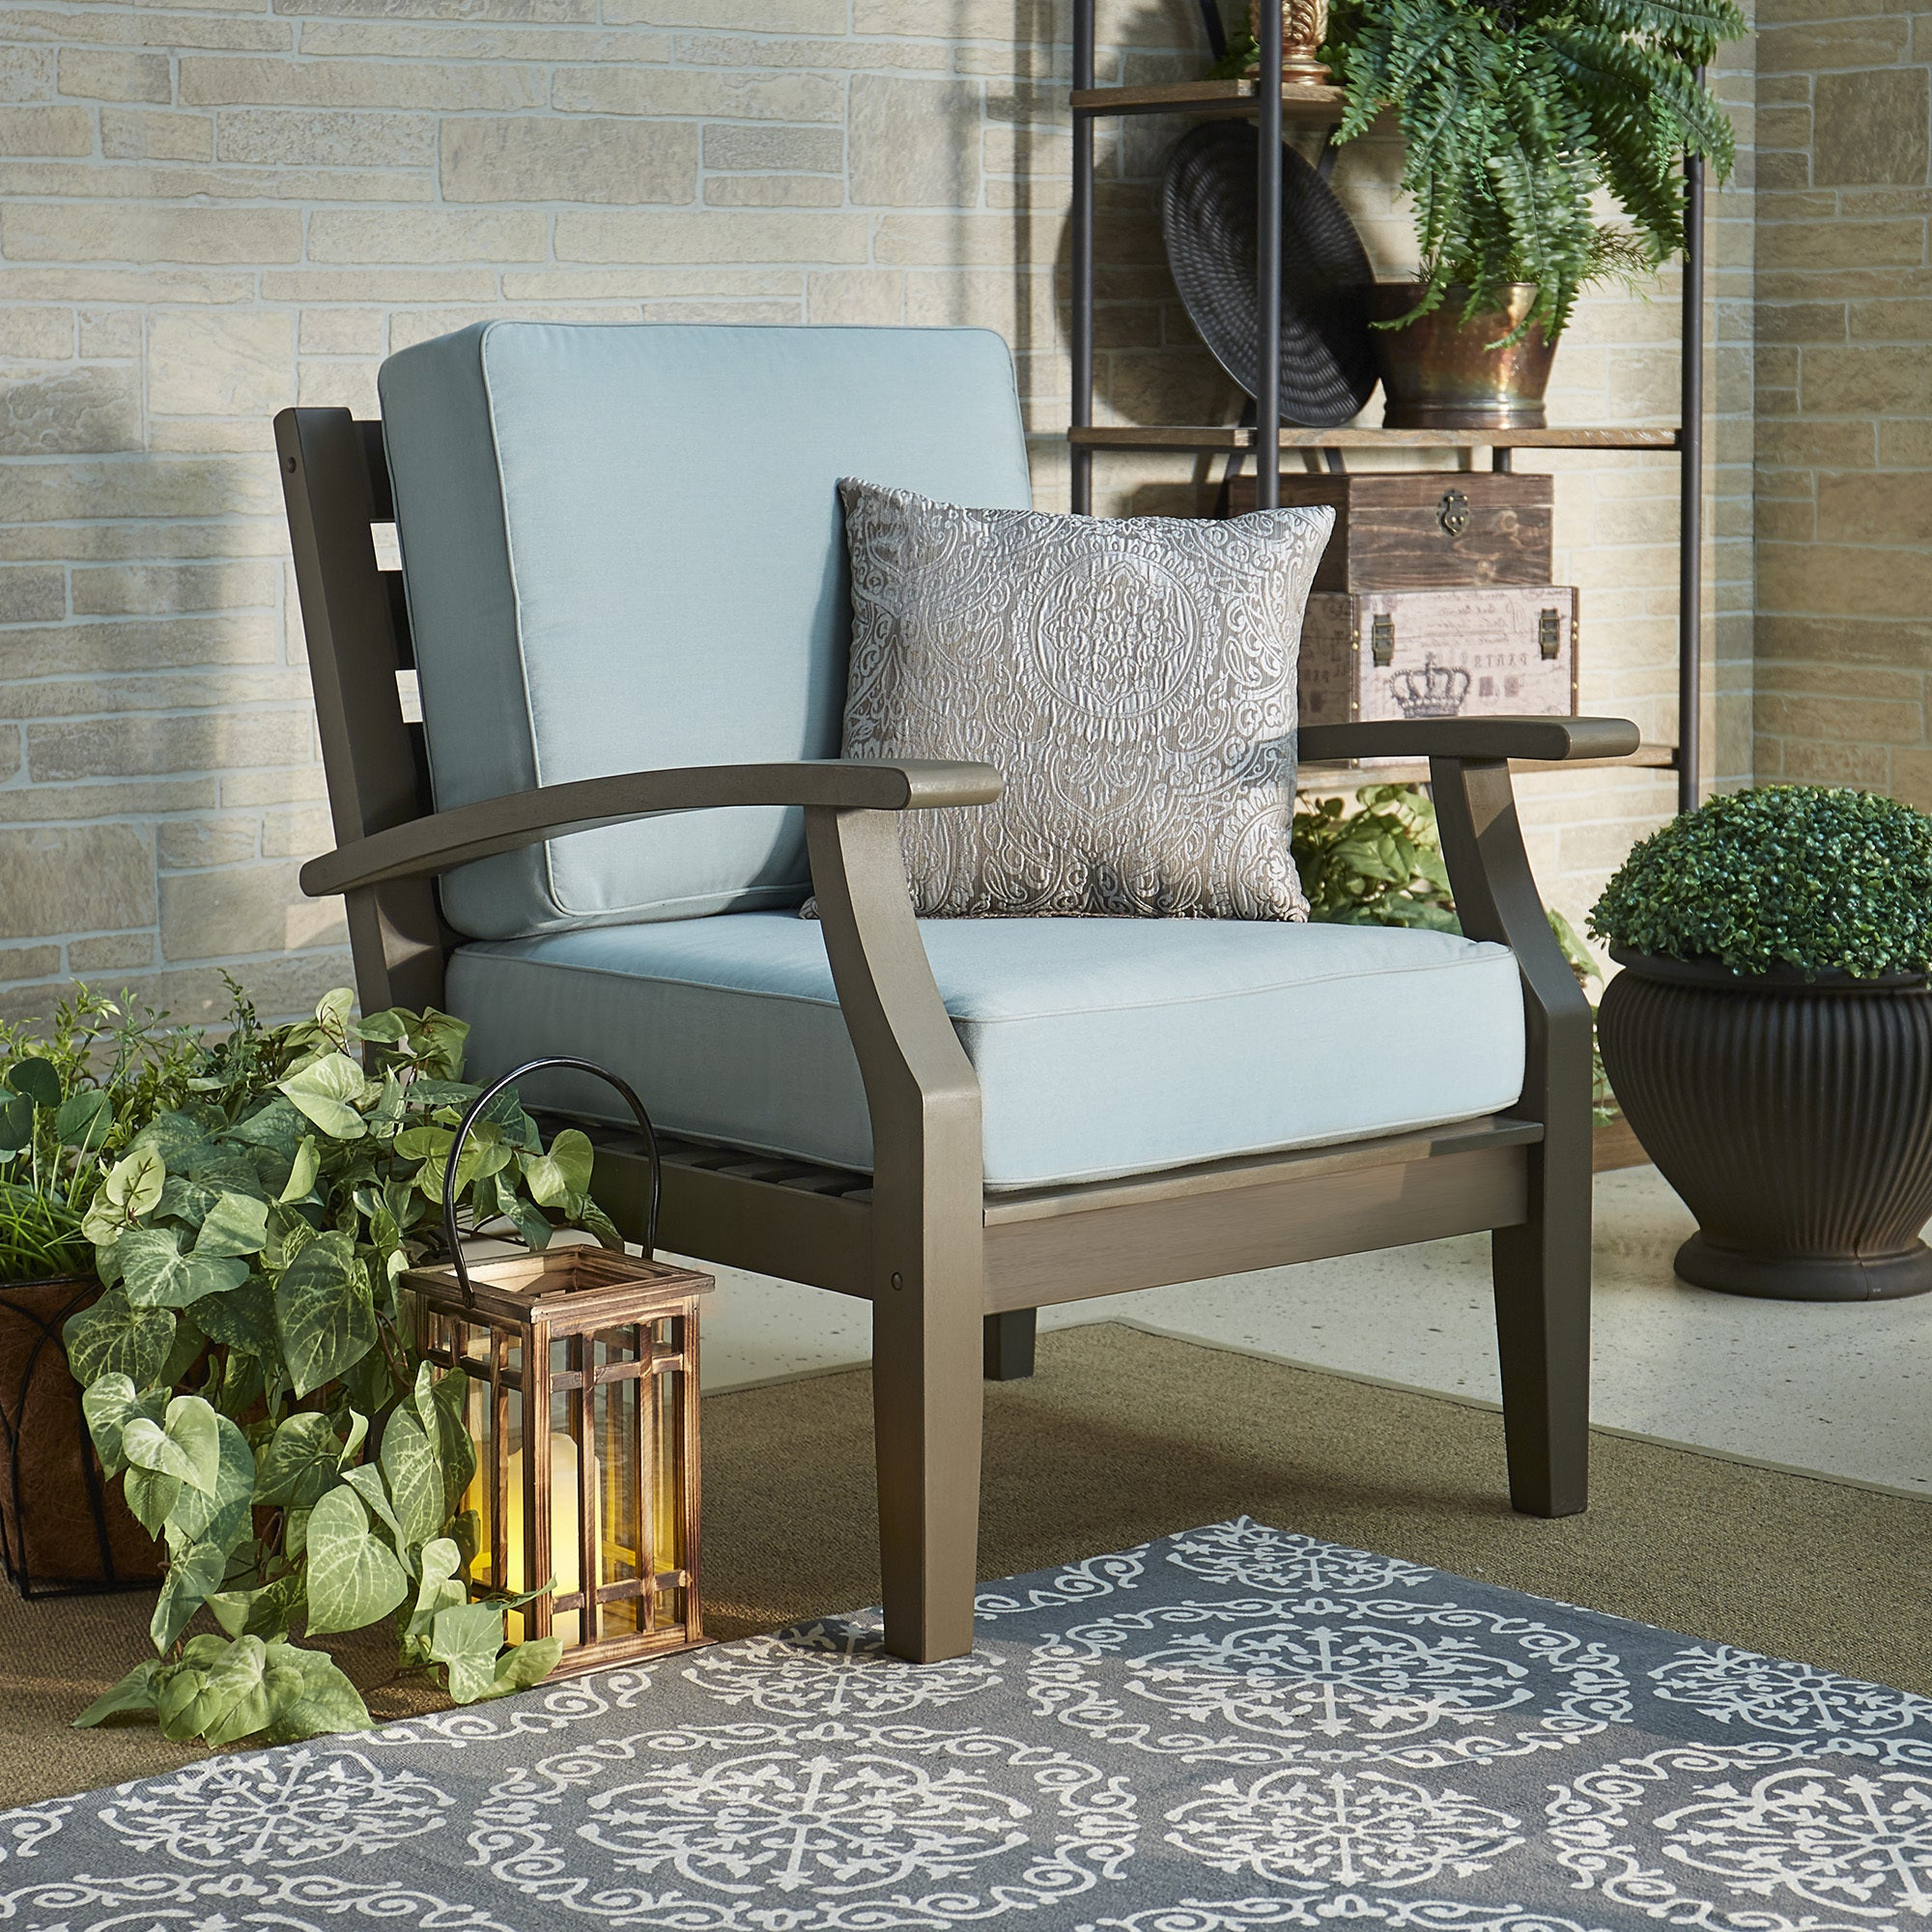 Yasawa Grey Modern Outdoor Cushioned Wood Chair iNSPIRE Q Oasis - Free  Shipping Today - Overstock